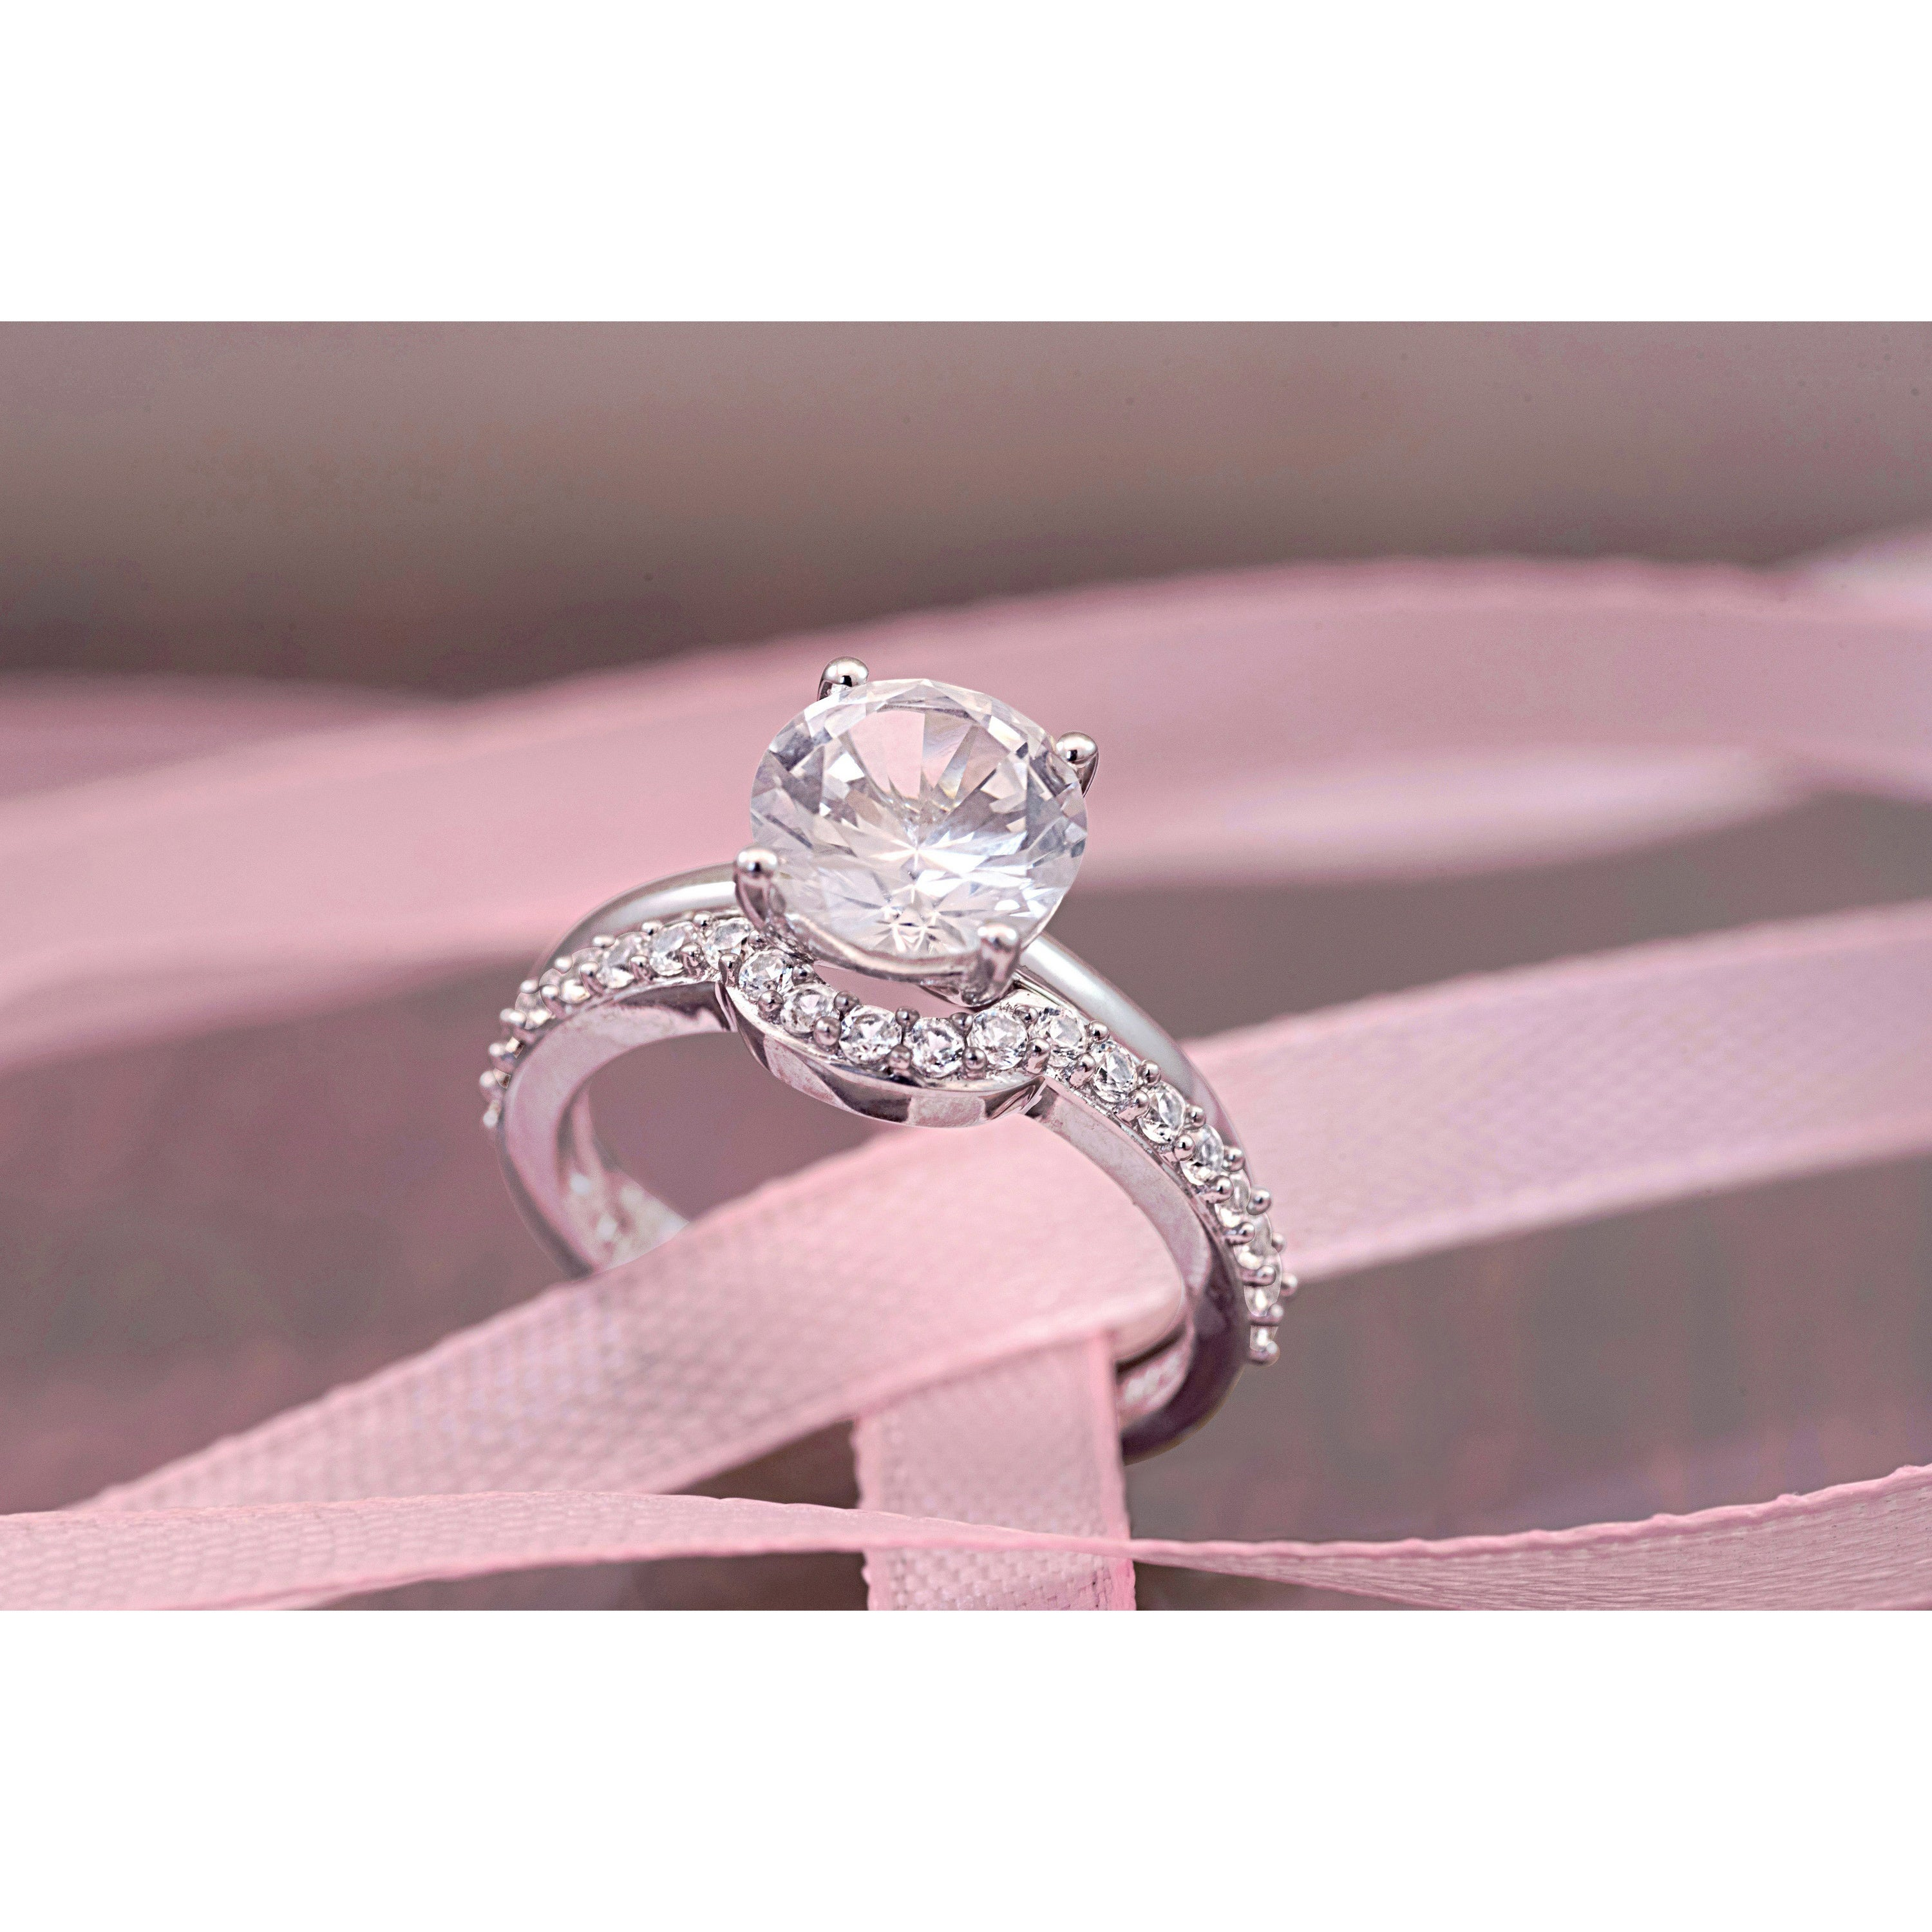 Emejing Pink Wedding Ring Sets Photos - Styles & Ideas 2018 - sperr.us